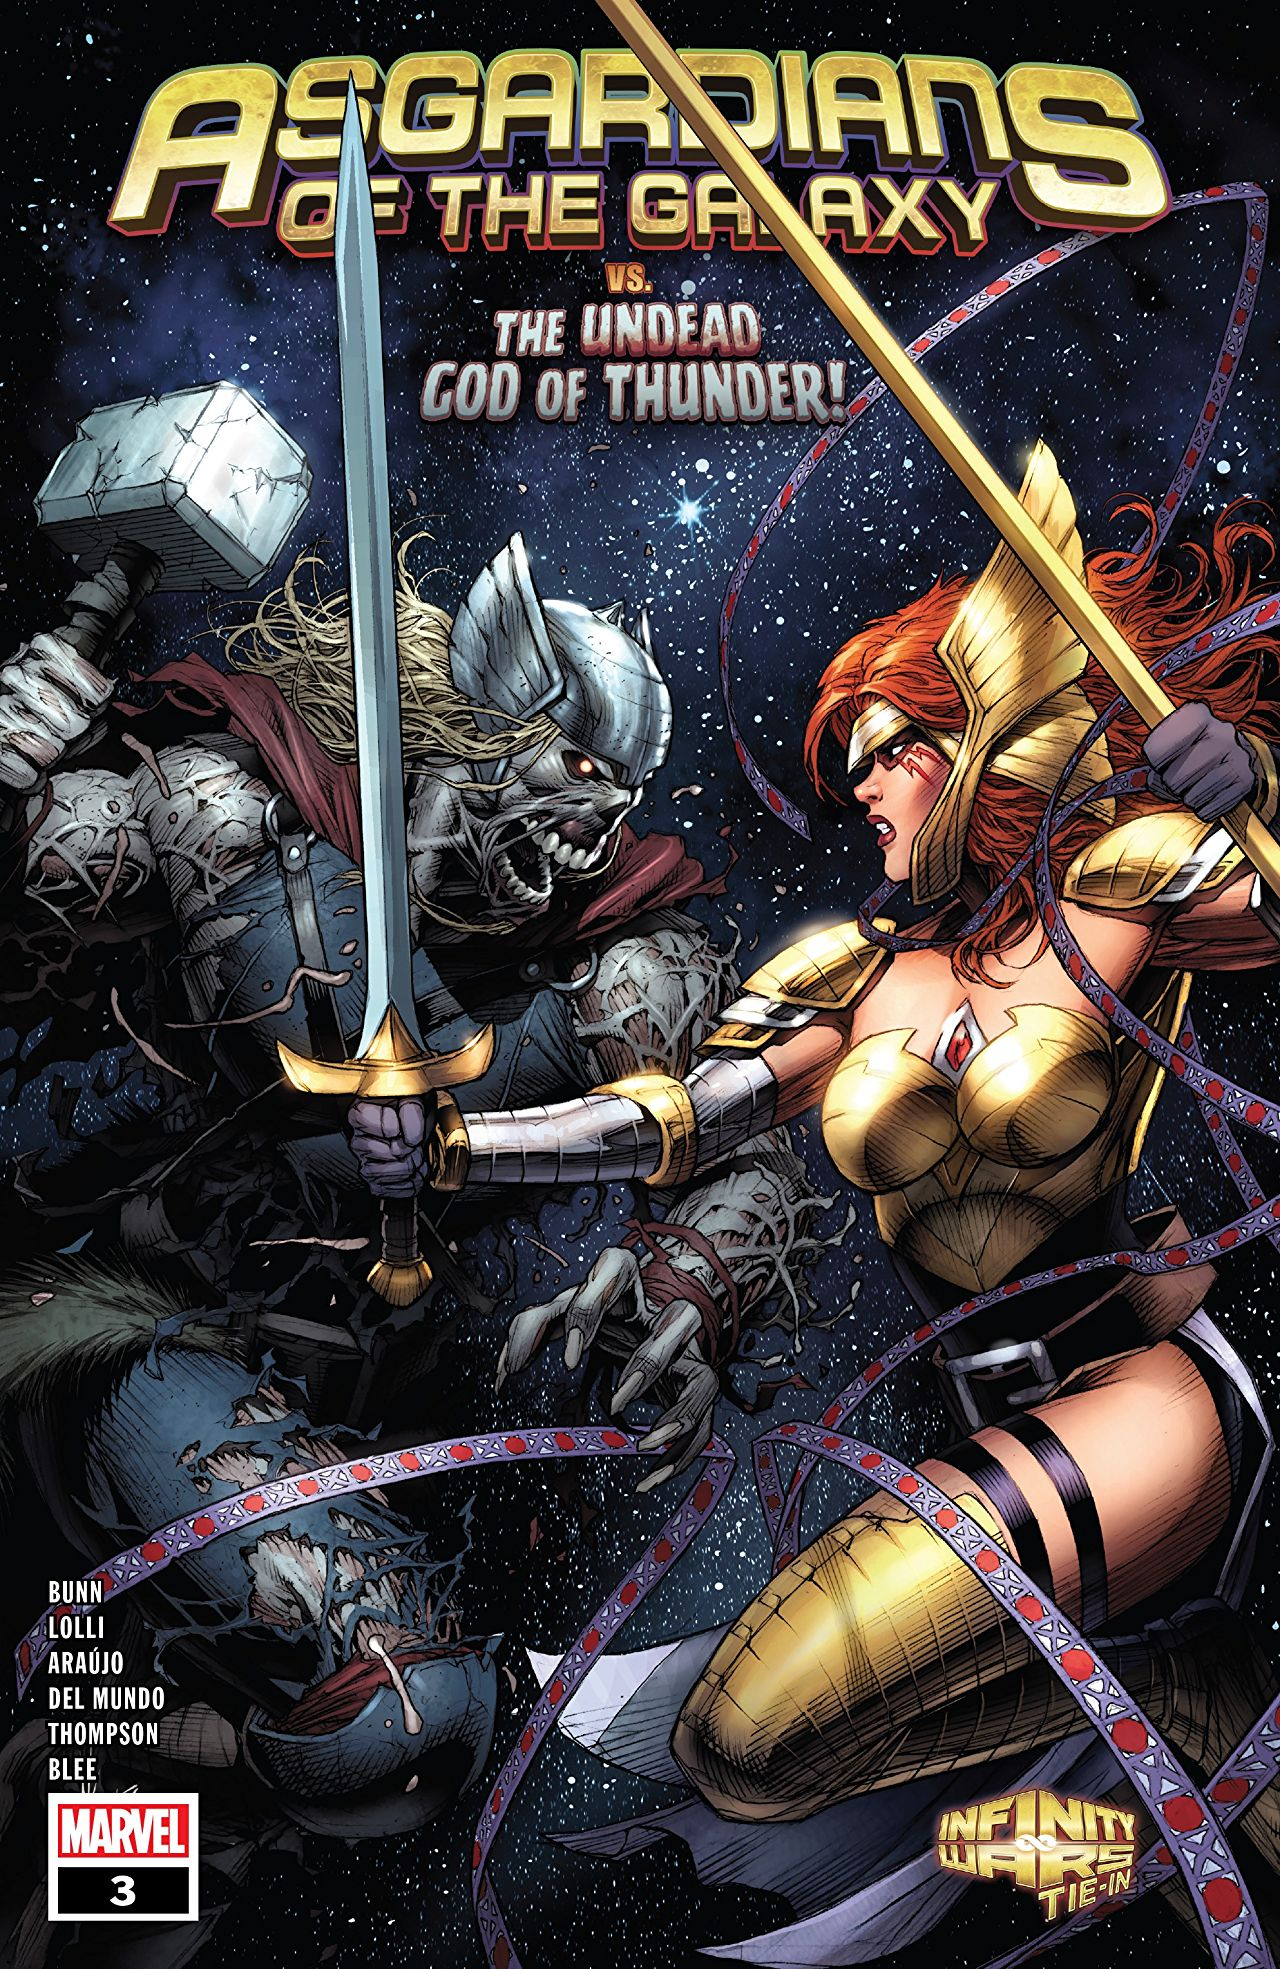 Exclusive Preview: ASGARDIANS OF THE GALAXY #3